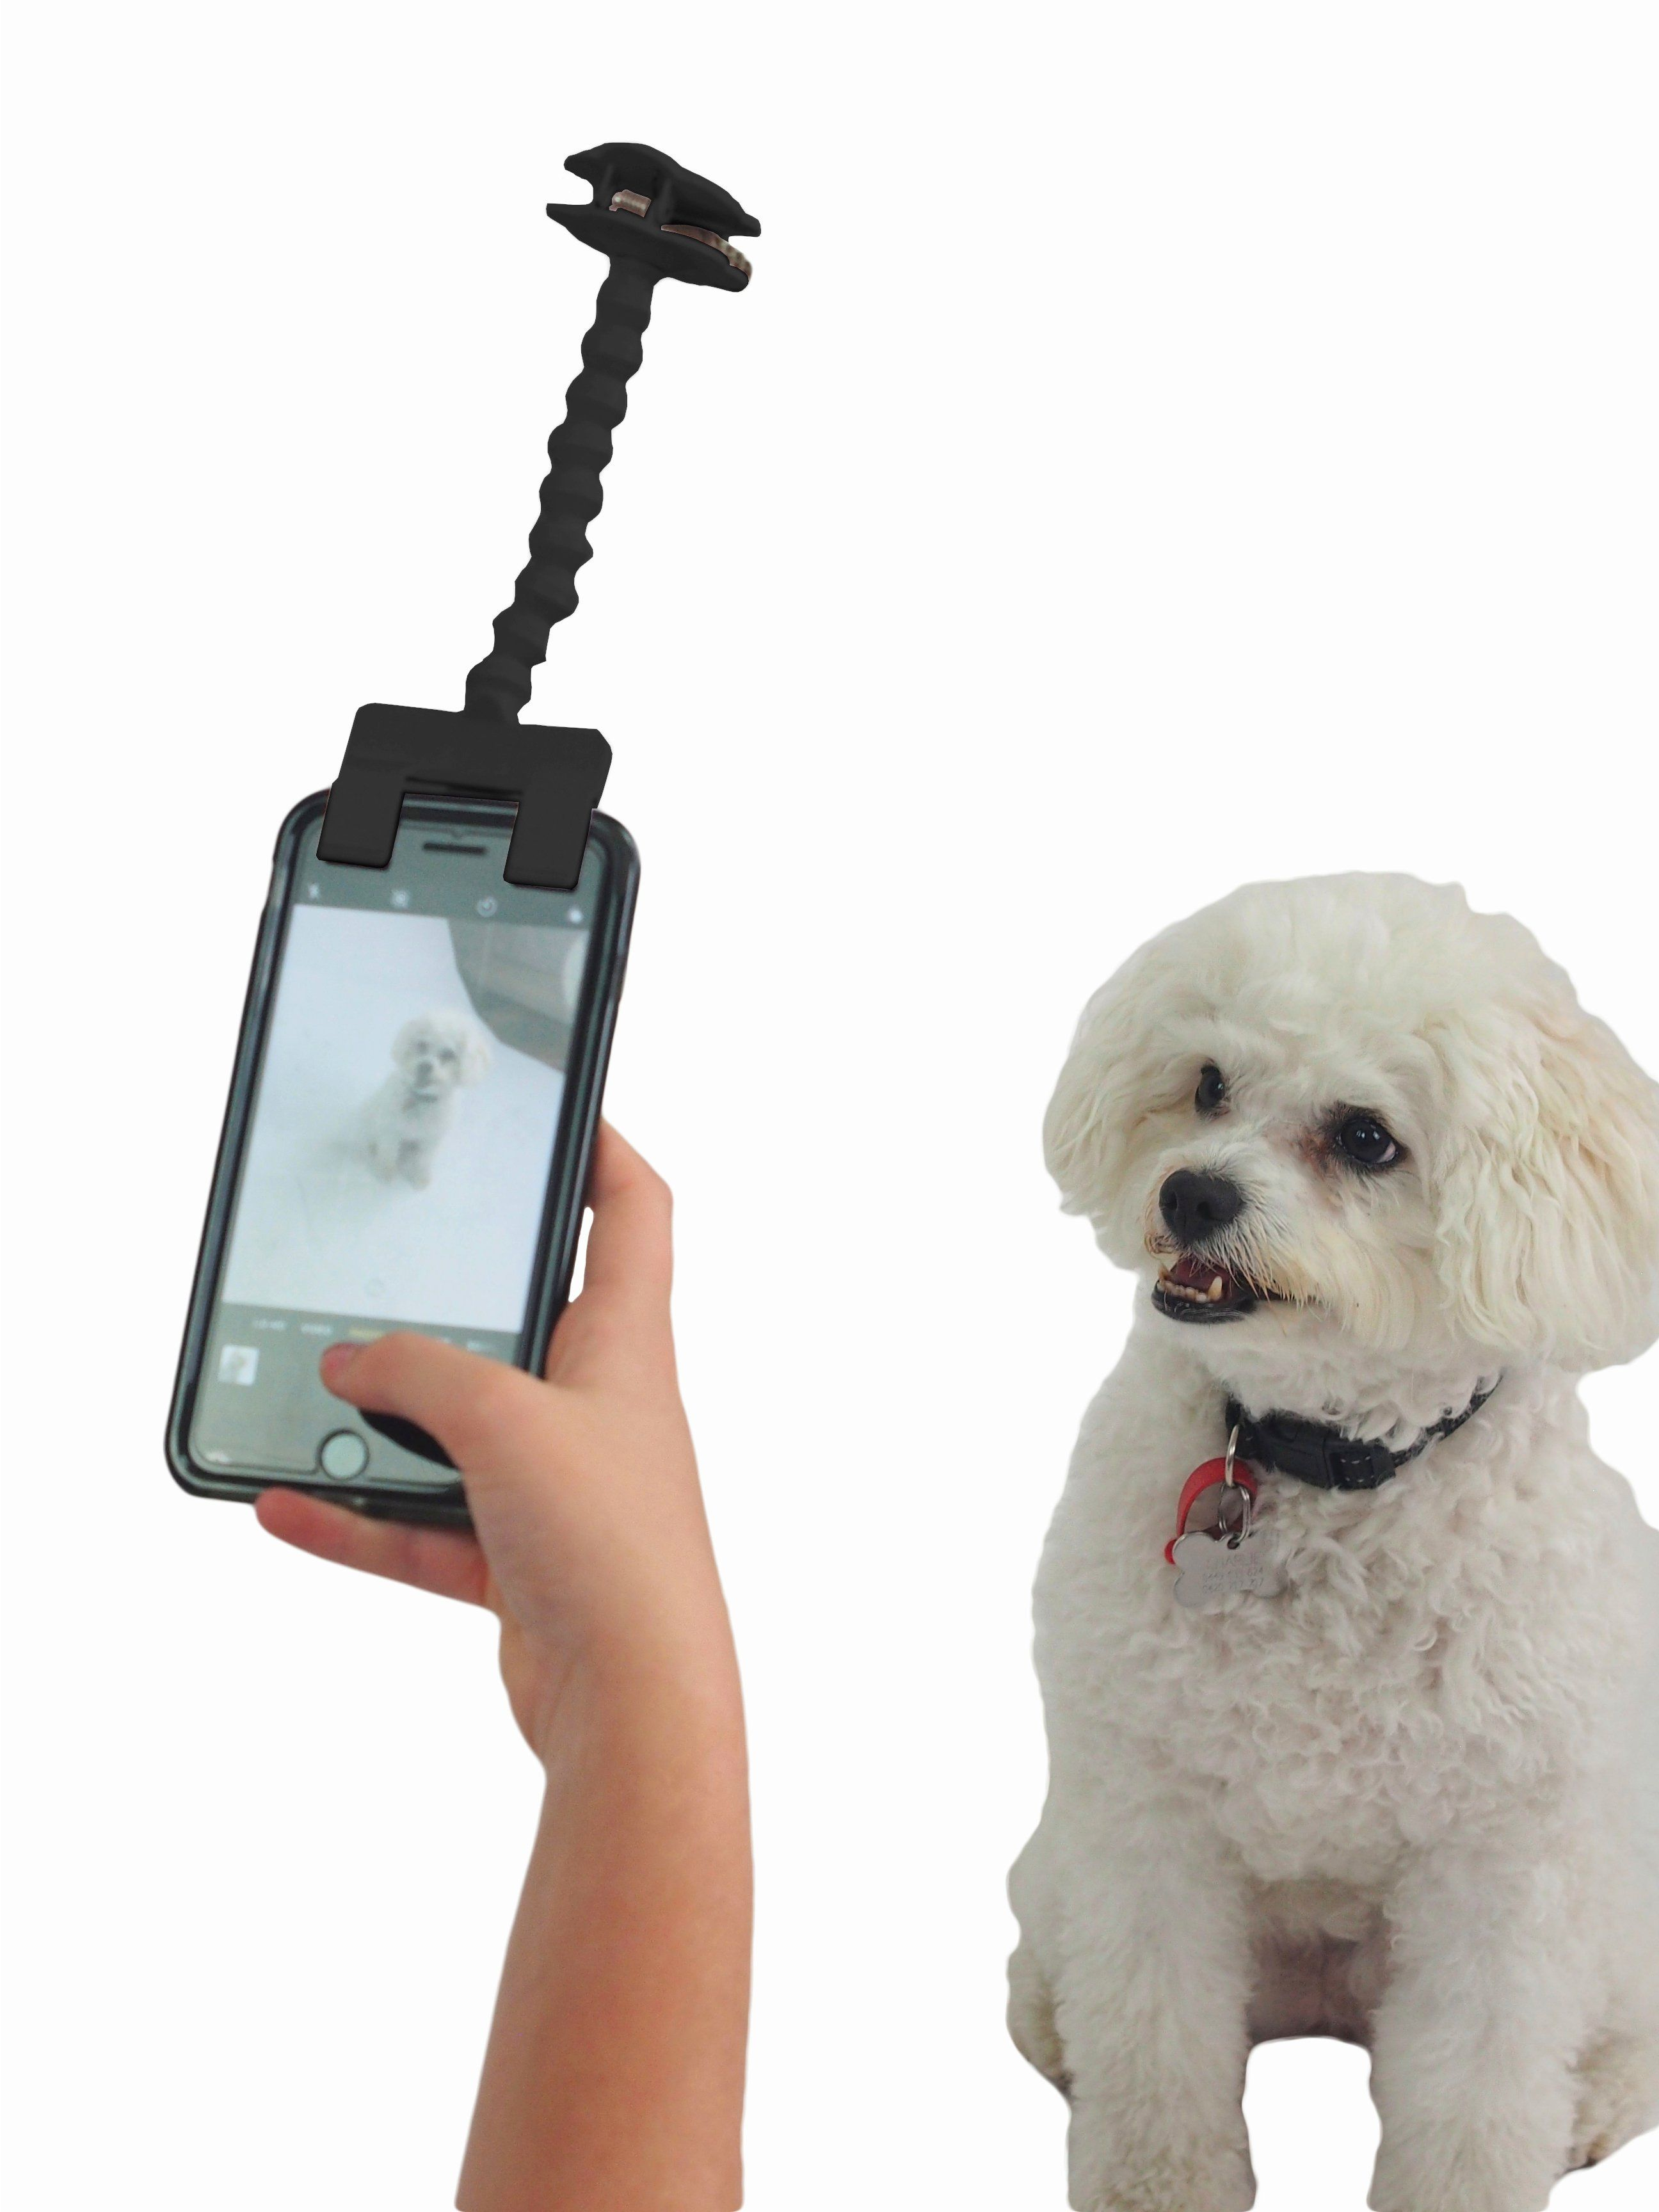 Are You Looking For That Pawfect Gift For Yourself Or A Dog Lover